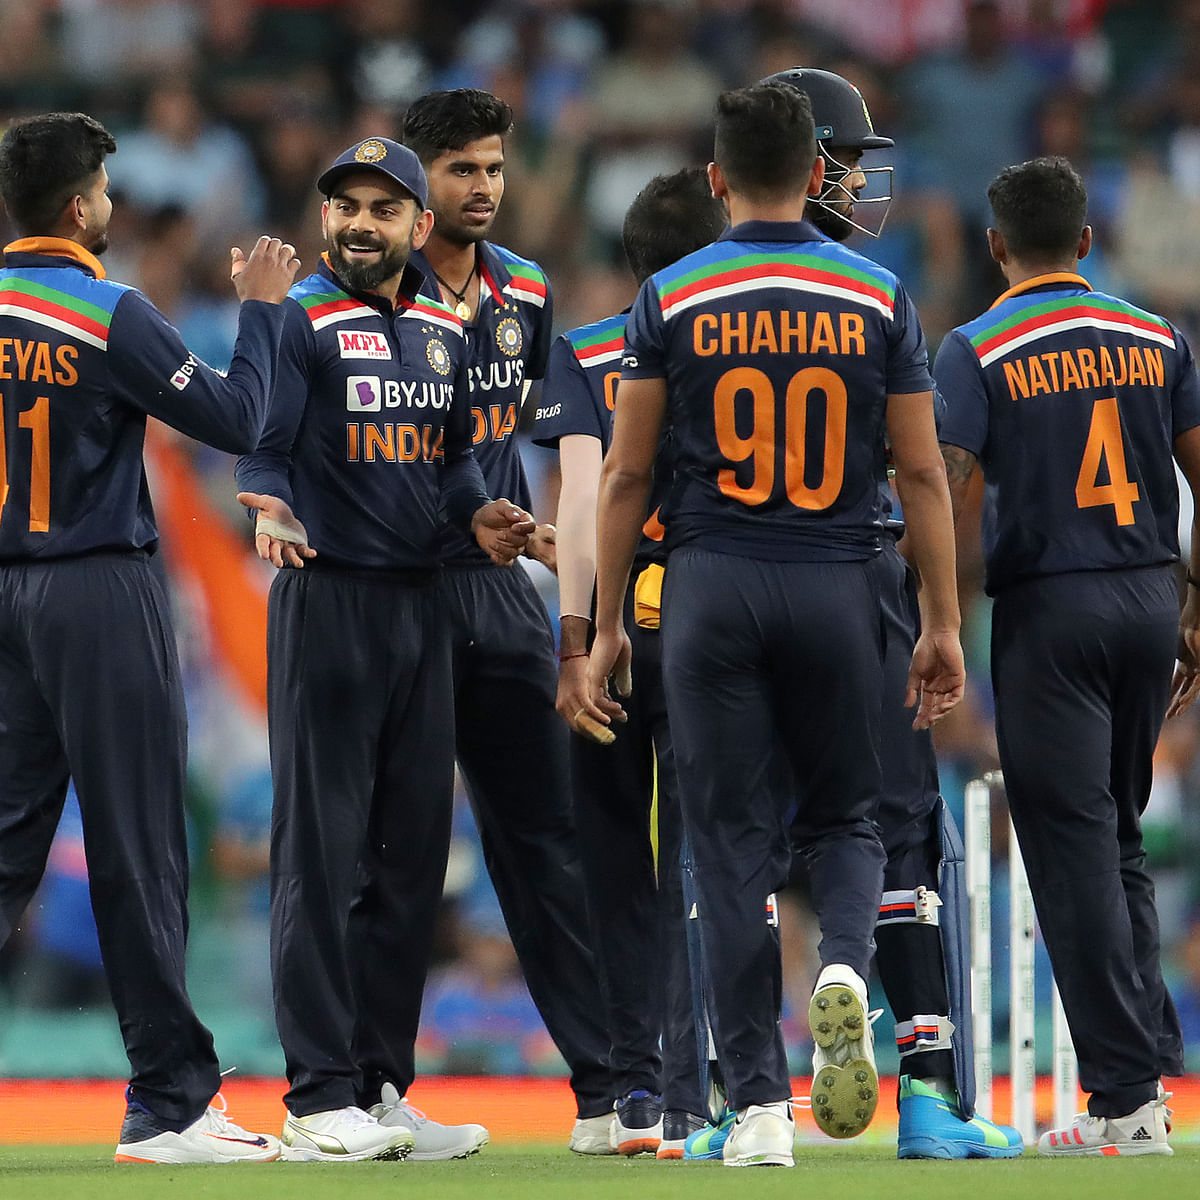 India vs Australia 2020: Preview, Dream11, where and when to watch the 3rd T20I fixture live in India